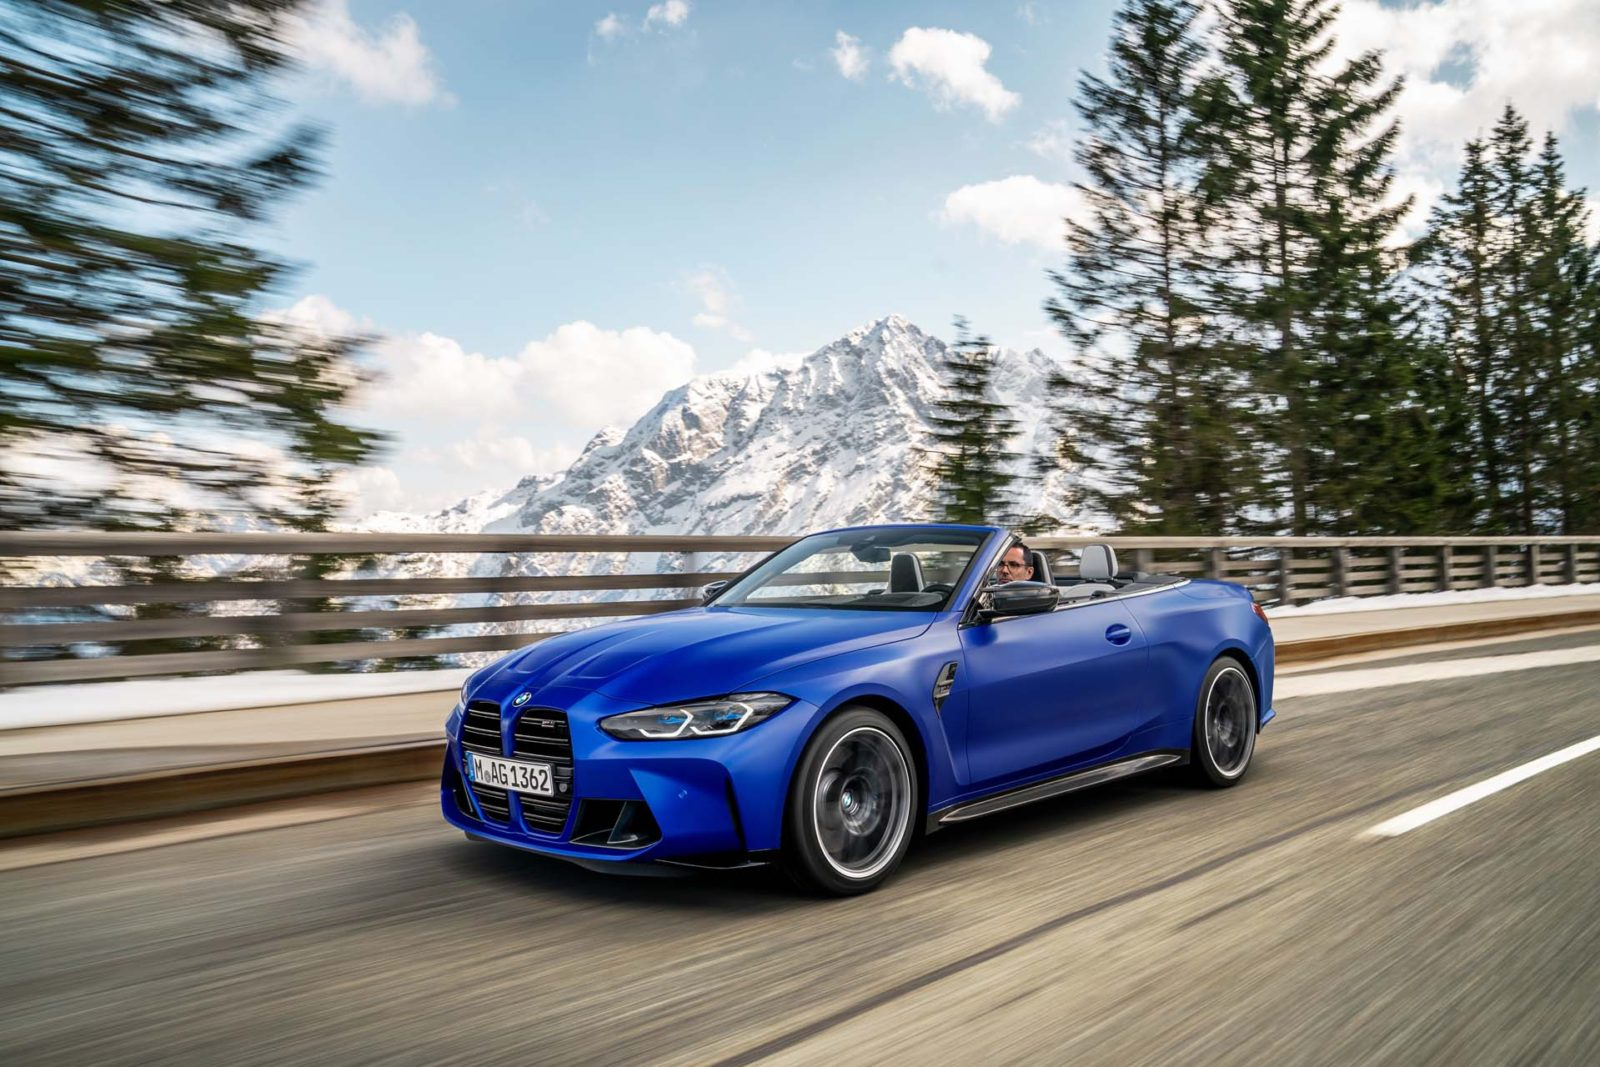 preview:-2022-bmw-m4-convertible-arrives-with-503-hp,-awd